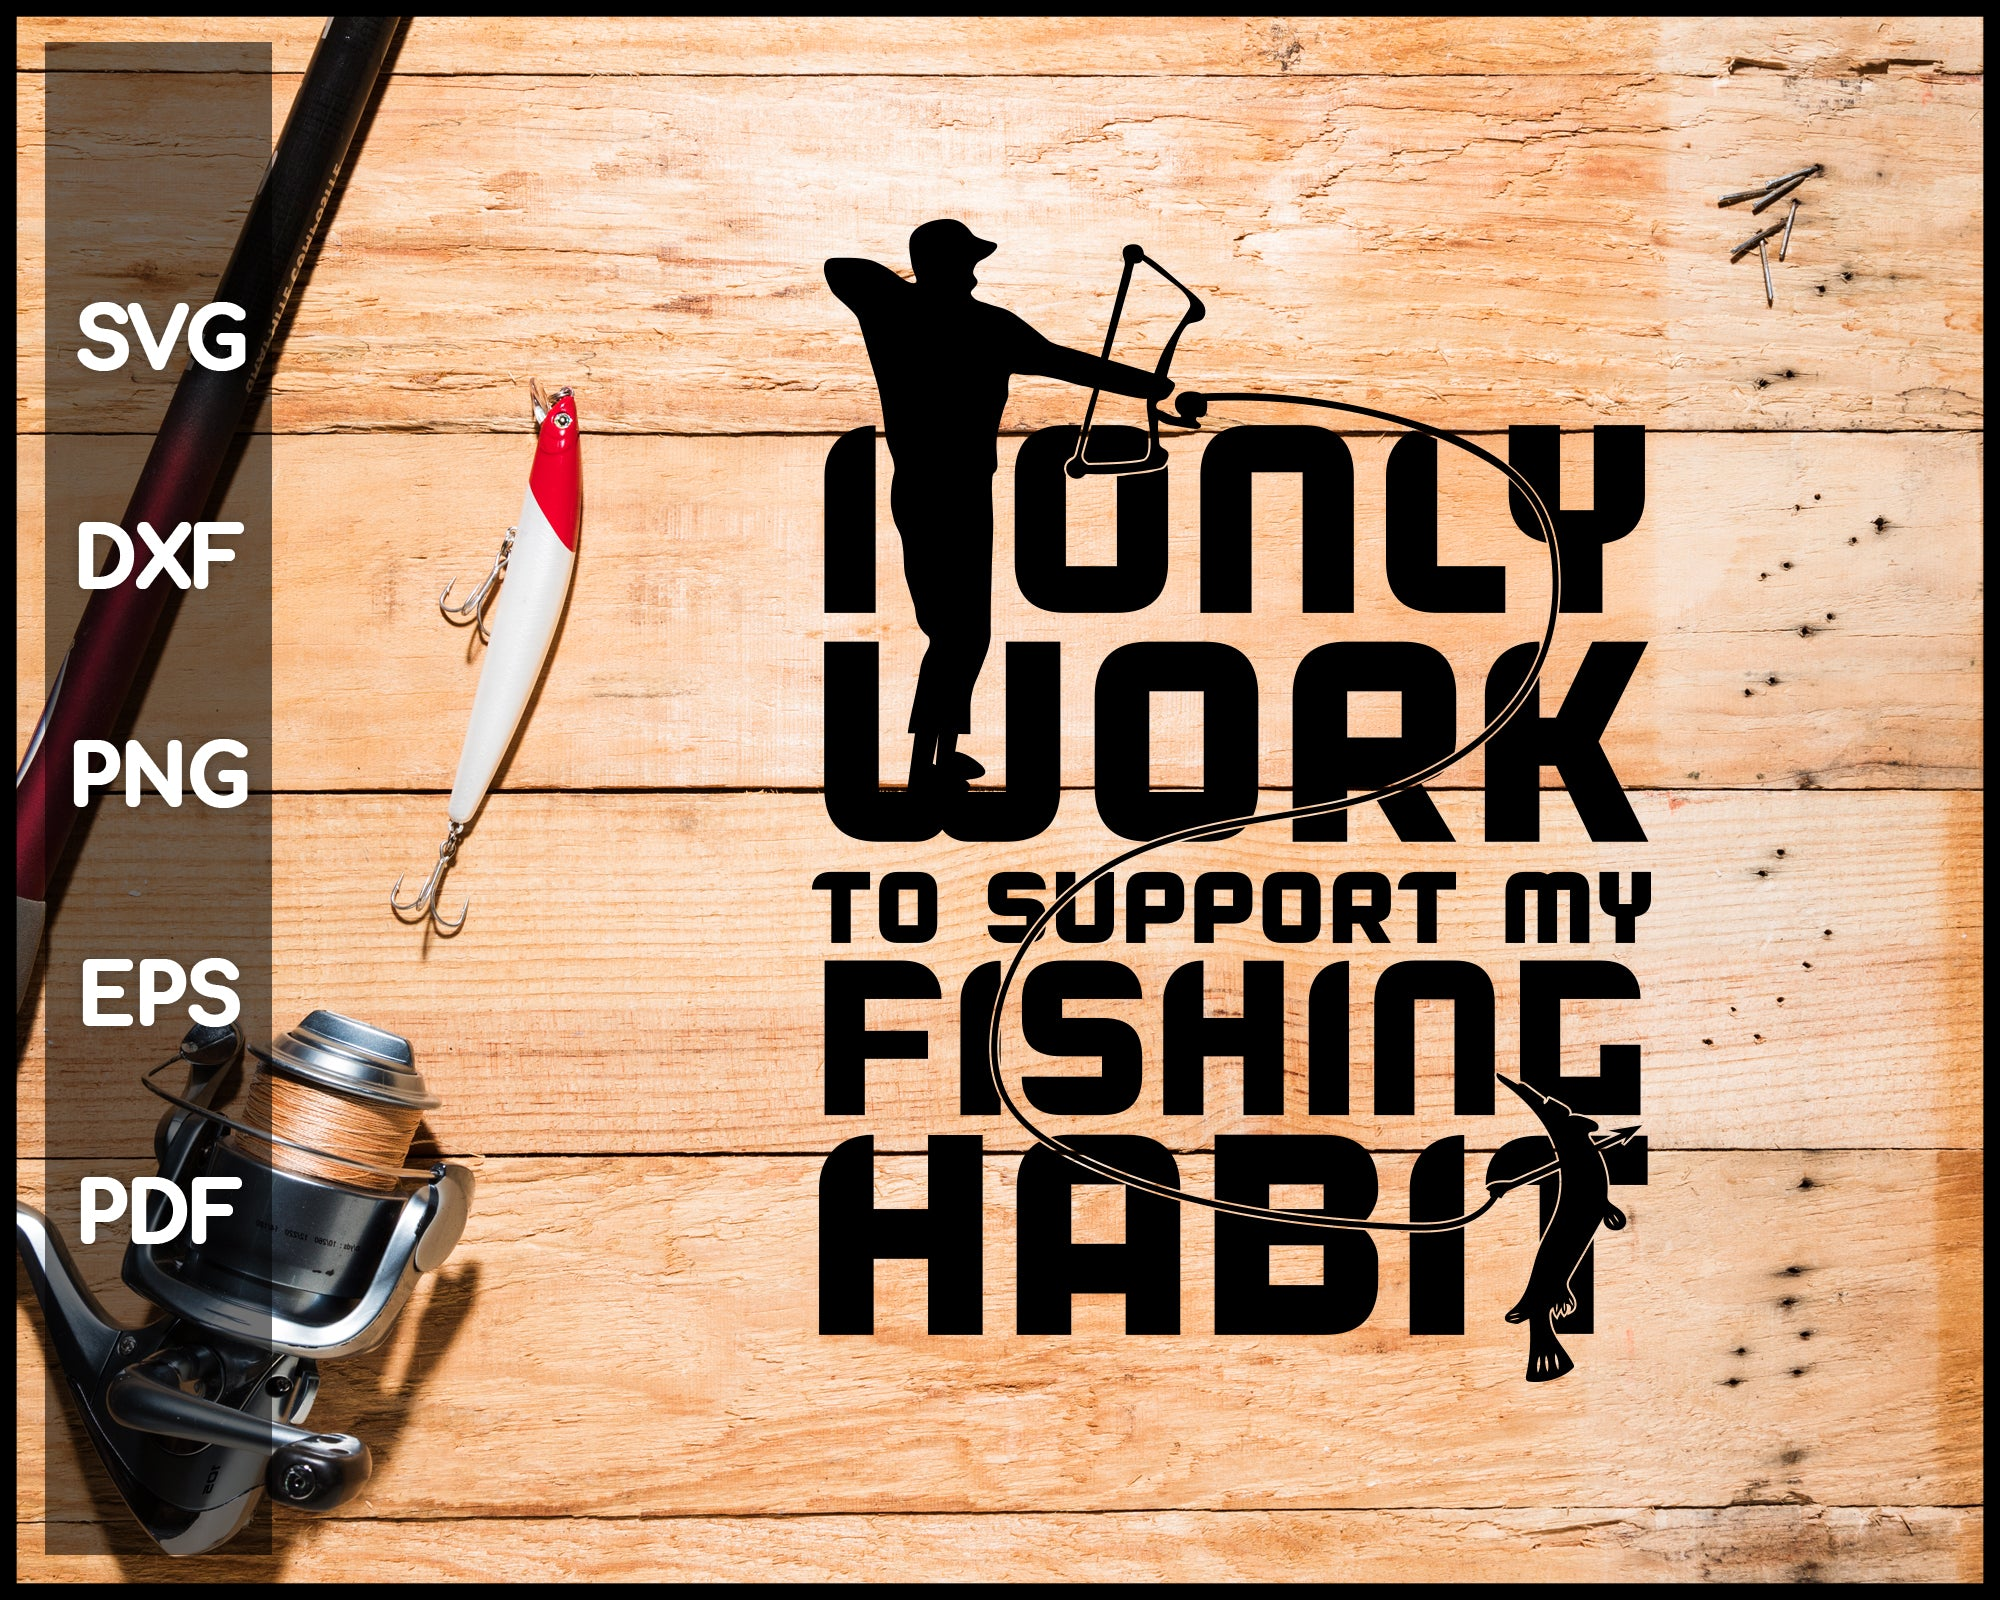 I Only Work To Support My Fishing Habit svg png Silhouette Designs For Cricut And Printable Files